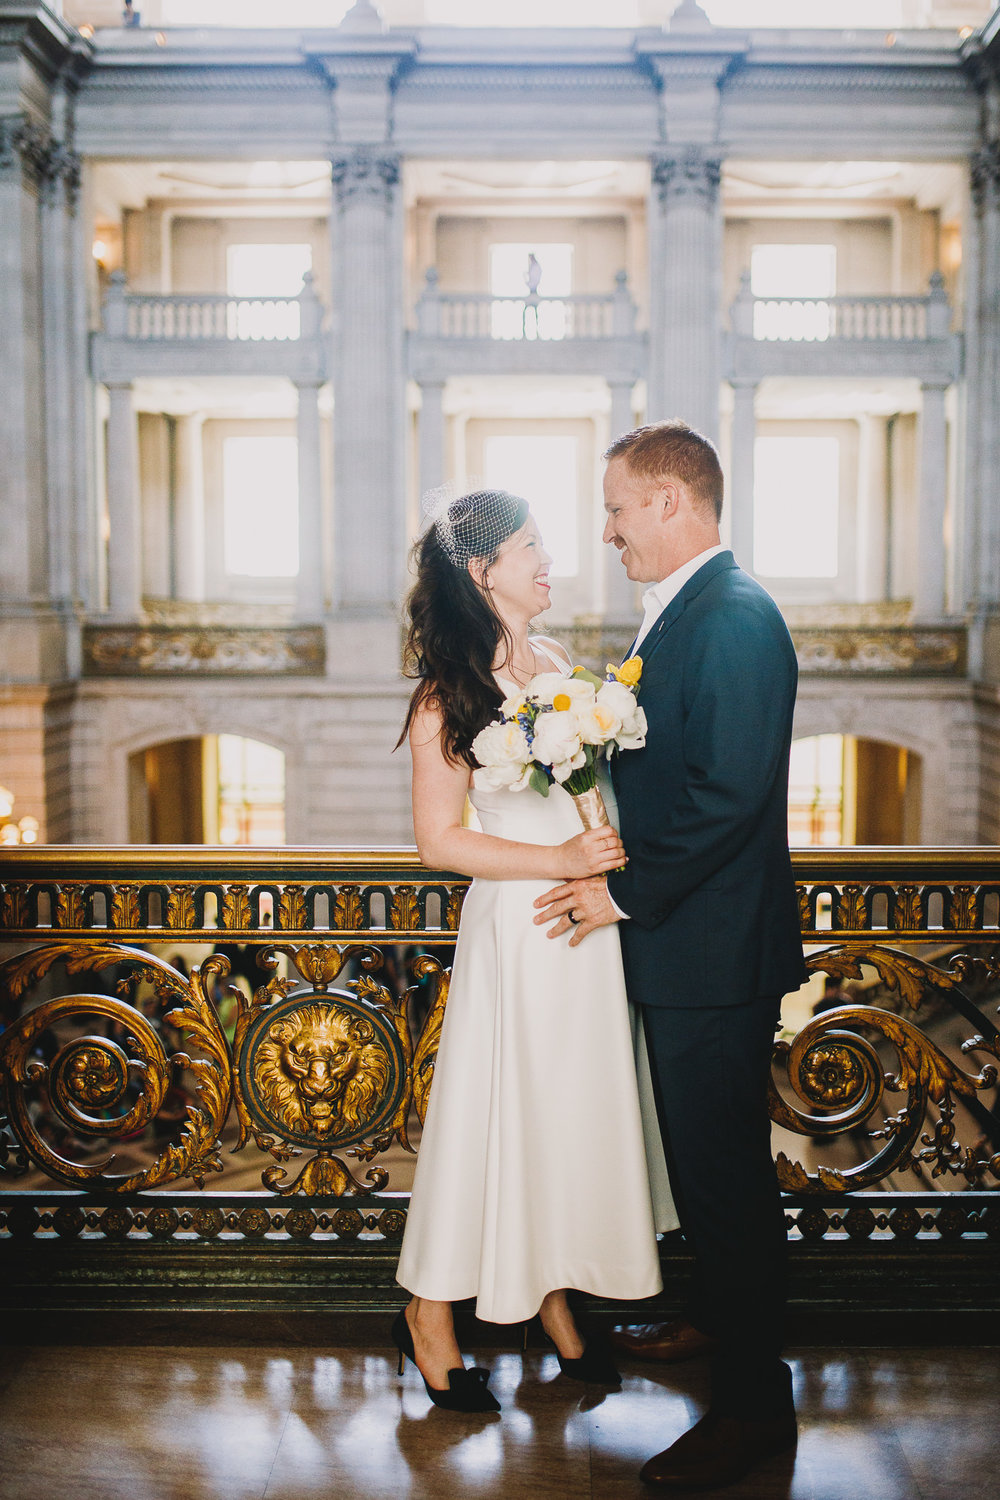 Archer Inspired Photography SF City Hall Elopement Wedding Lifestyle Documentary Affordable Photographer-199.jpg